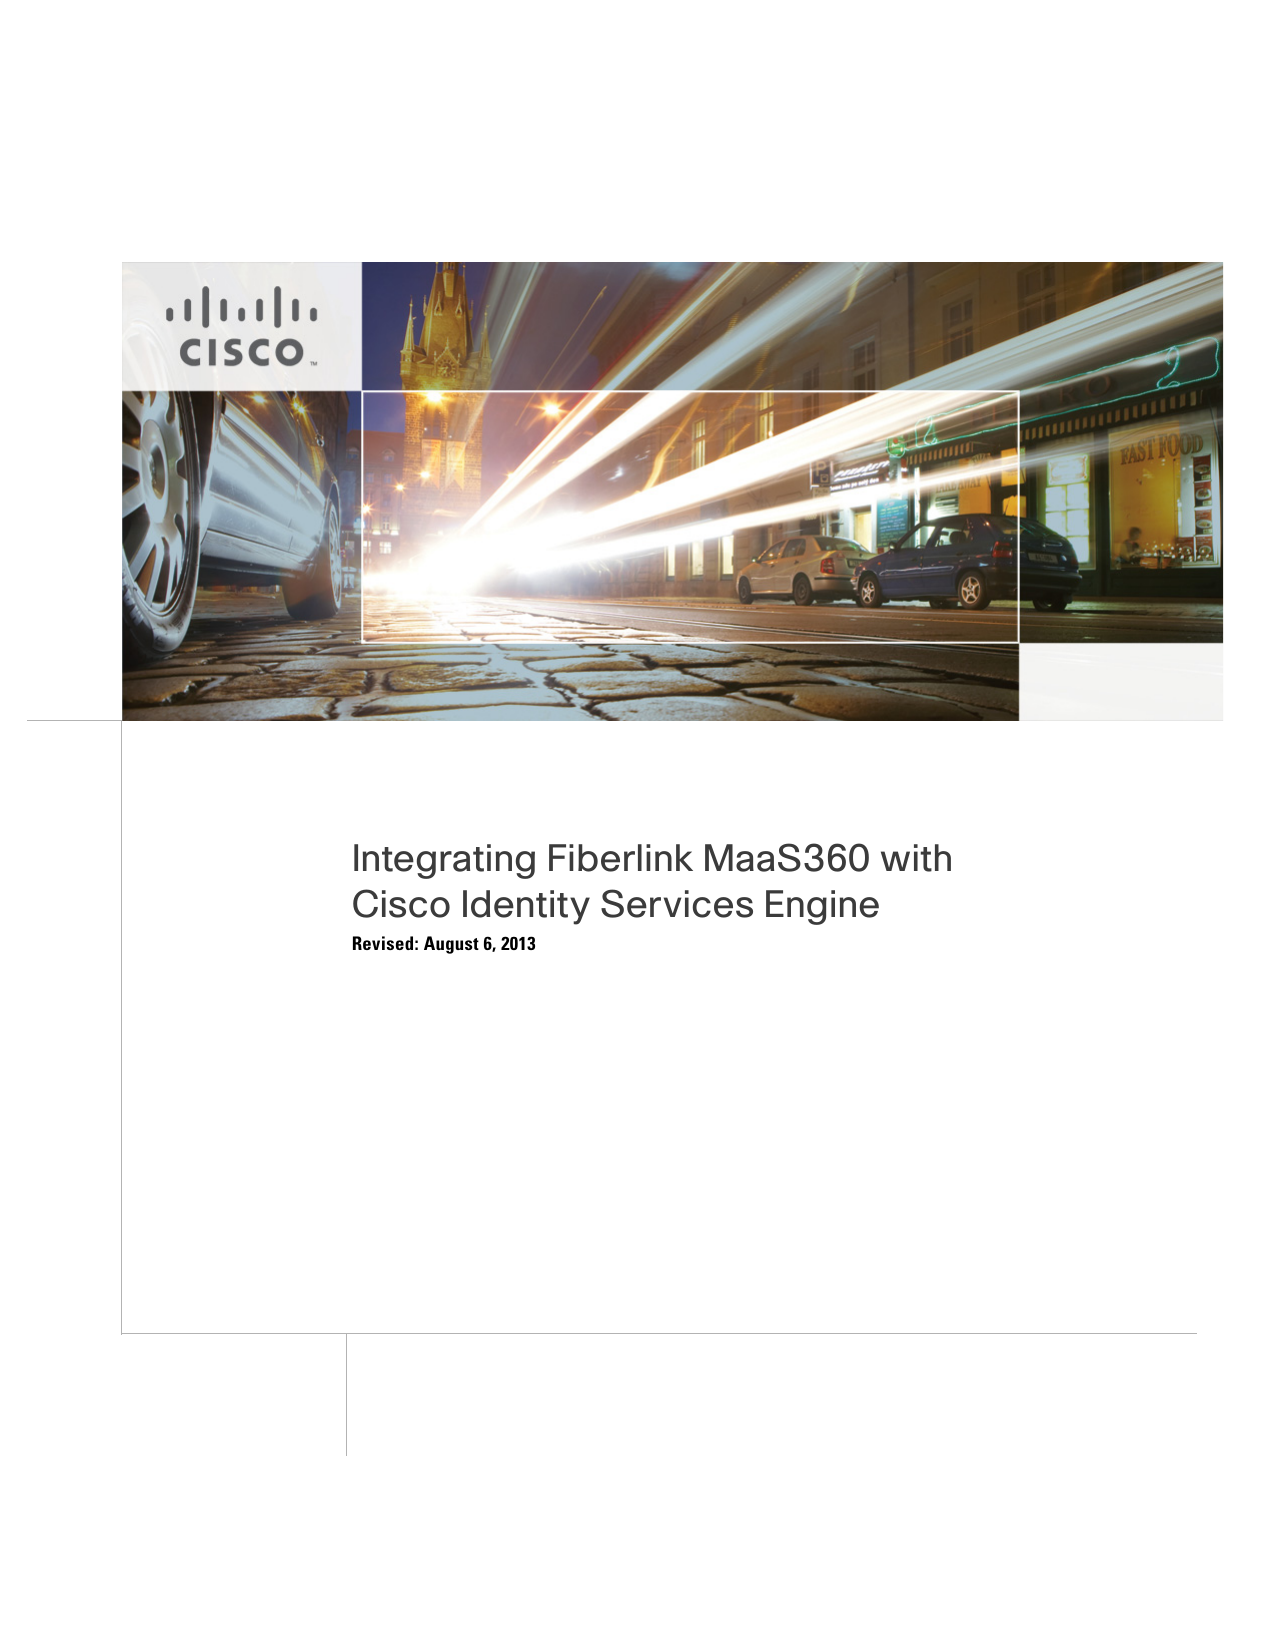 Integrating Fiberlink MaaS360 with Cisco Identity Services Engine